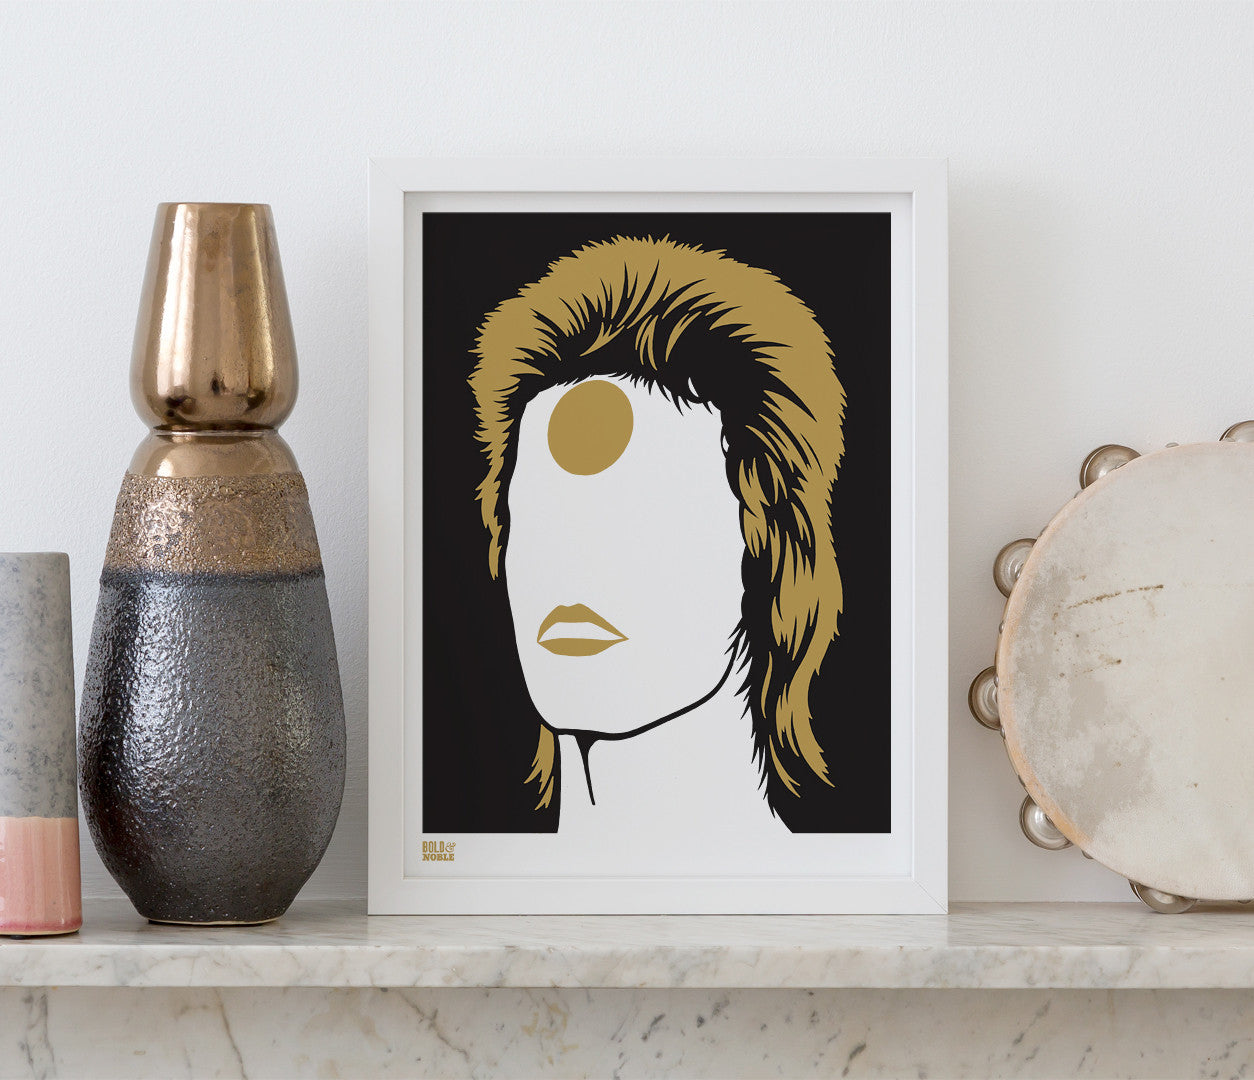 Pictures and Wall Art, Screen Printed David Bowie Ziggy Stardust in Bonze